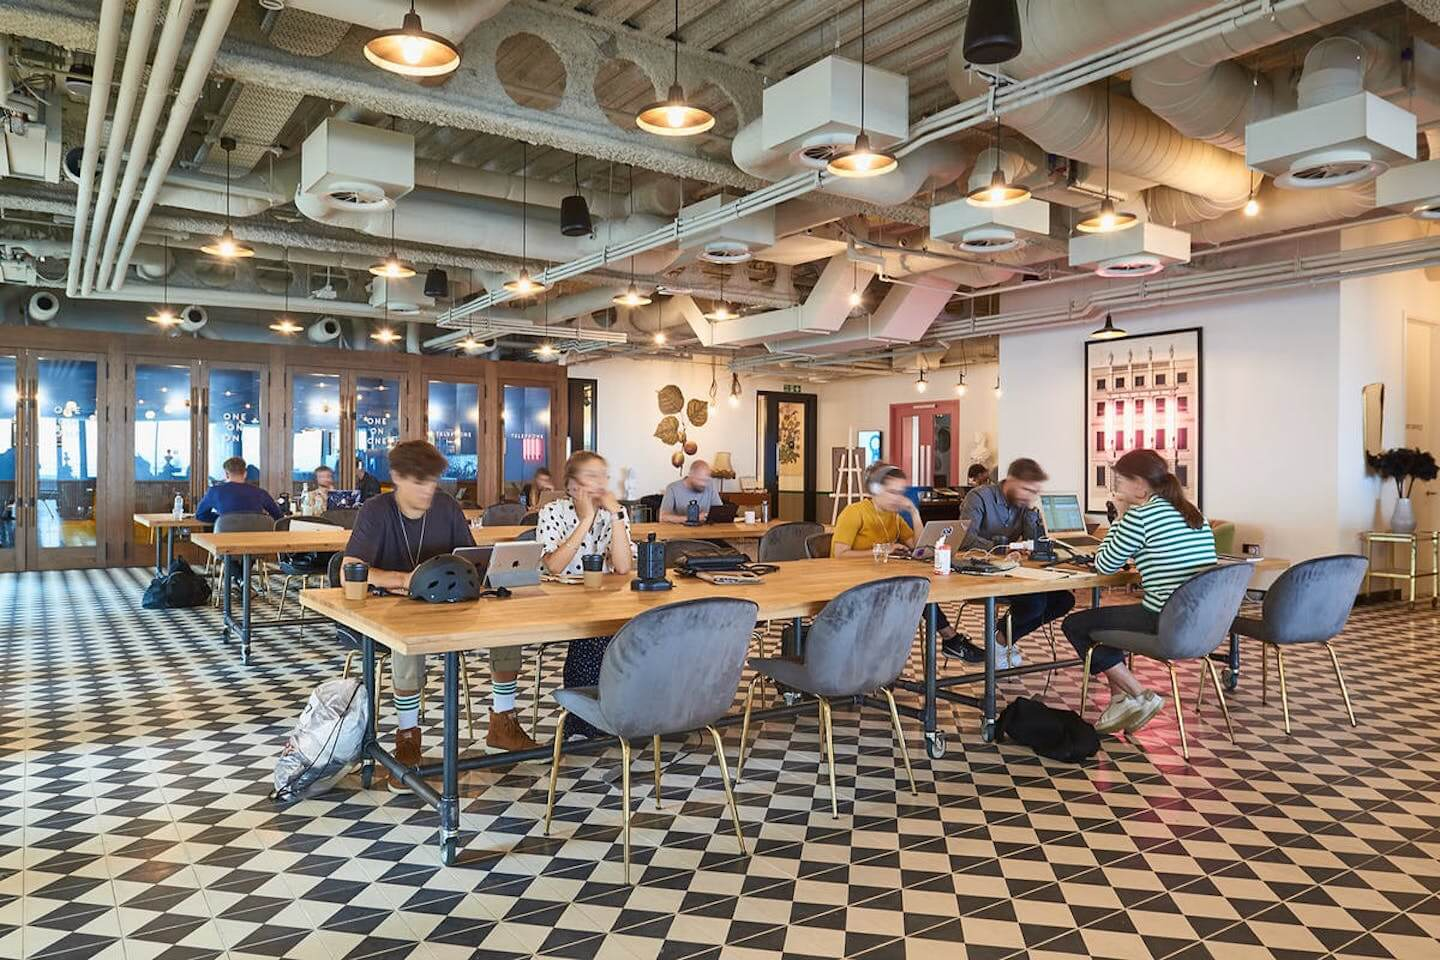 Flexible workspace provider Mindspace, offers collaborative co-working space for startups on Appold Street in the heart of Tech City, just a hop away from Silicon Roundabout.